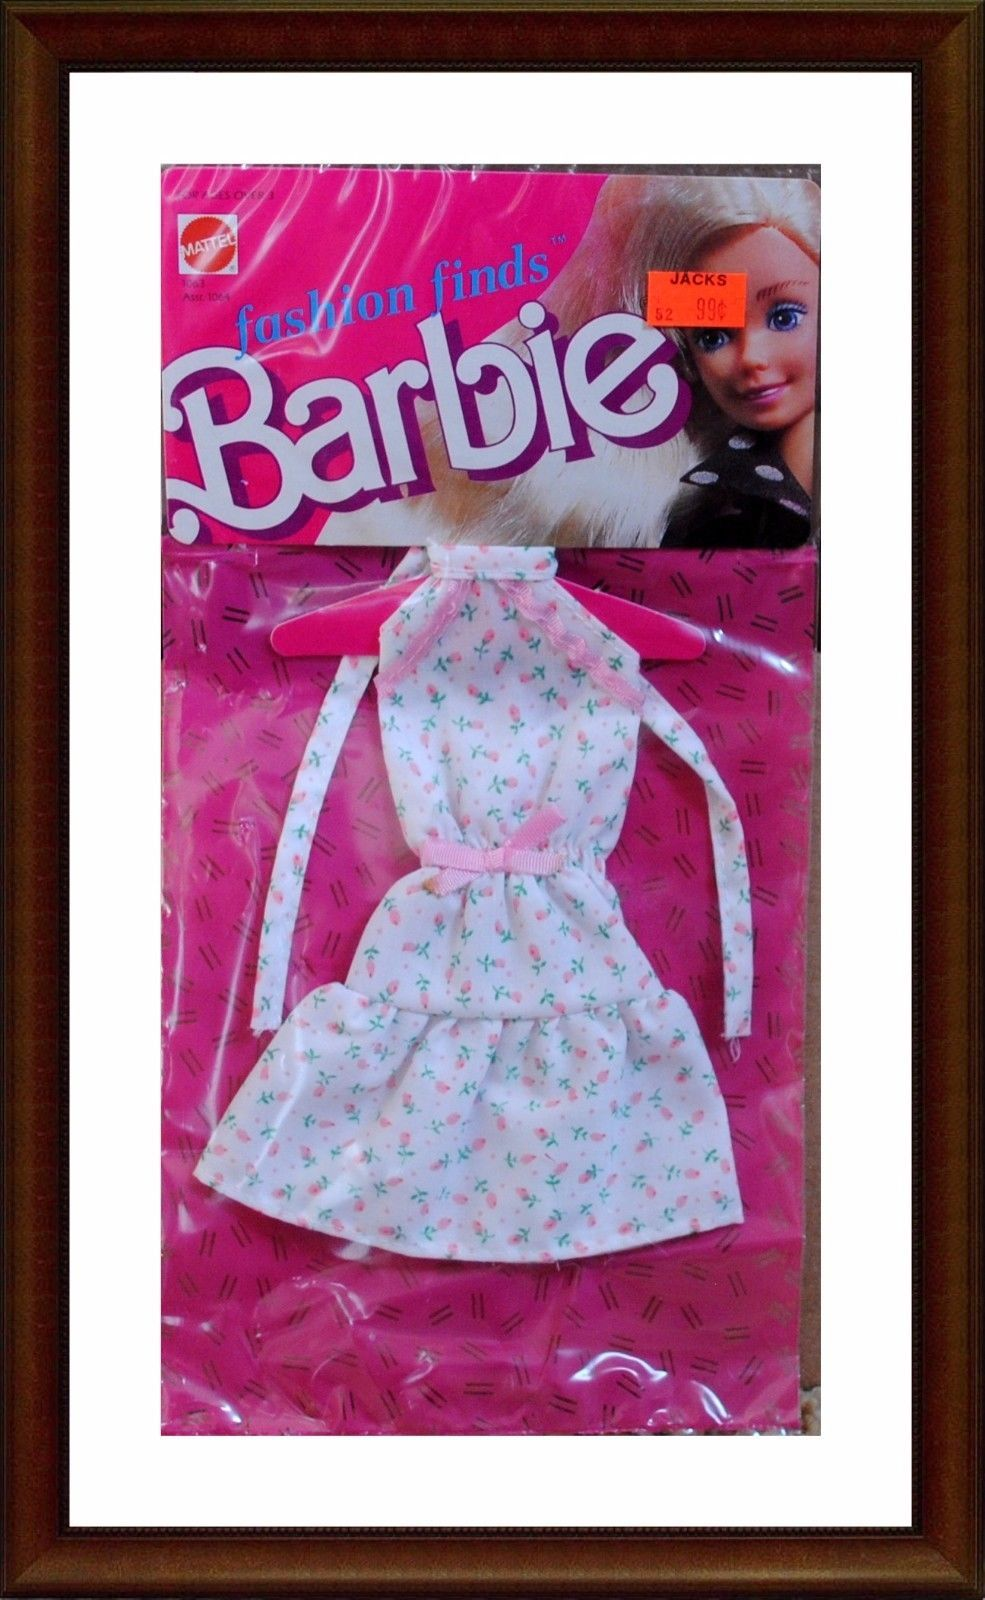 Vintage Barbie Clothes 1980 S Fashion Finds Nrfp In Package Lot 2 Vintage Barbie Clothes Fashion Barbie Fashion